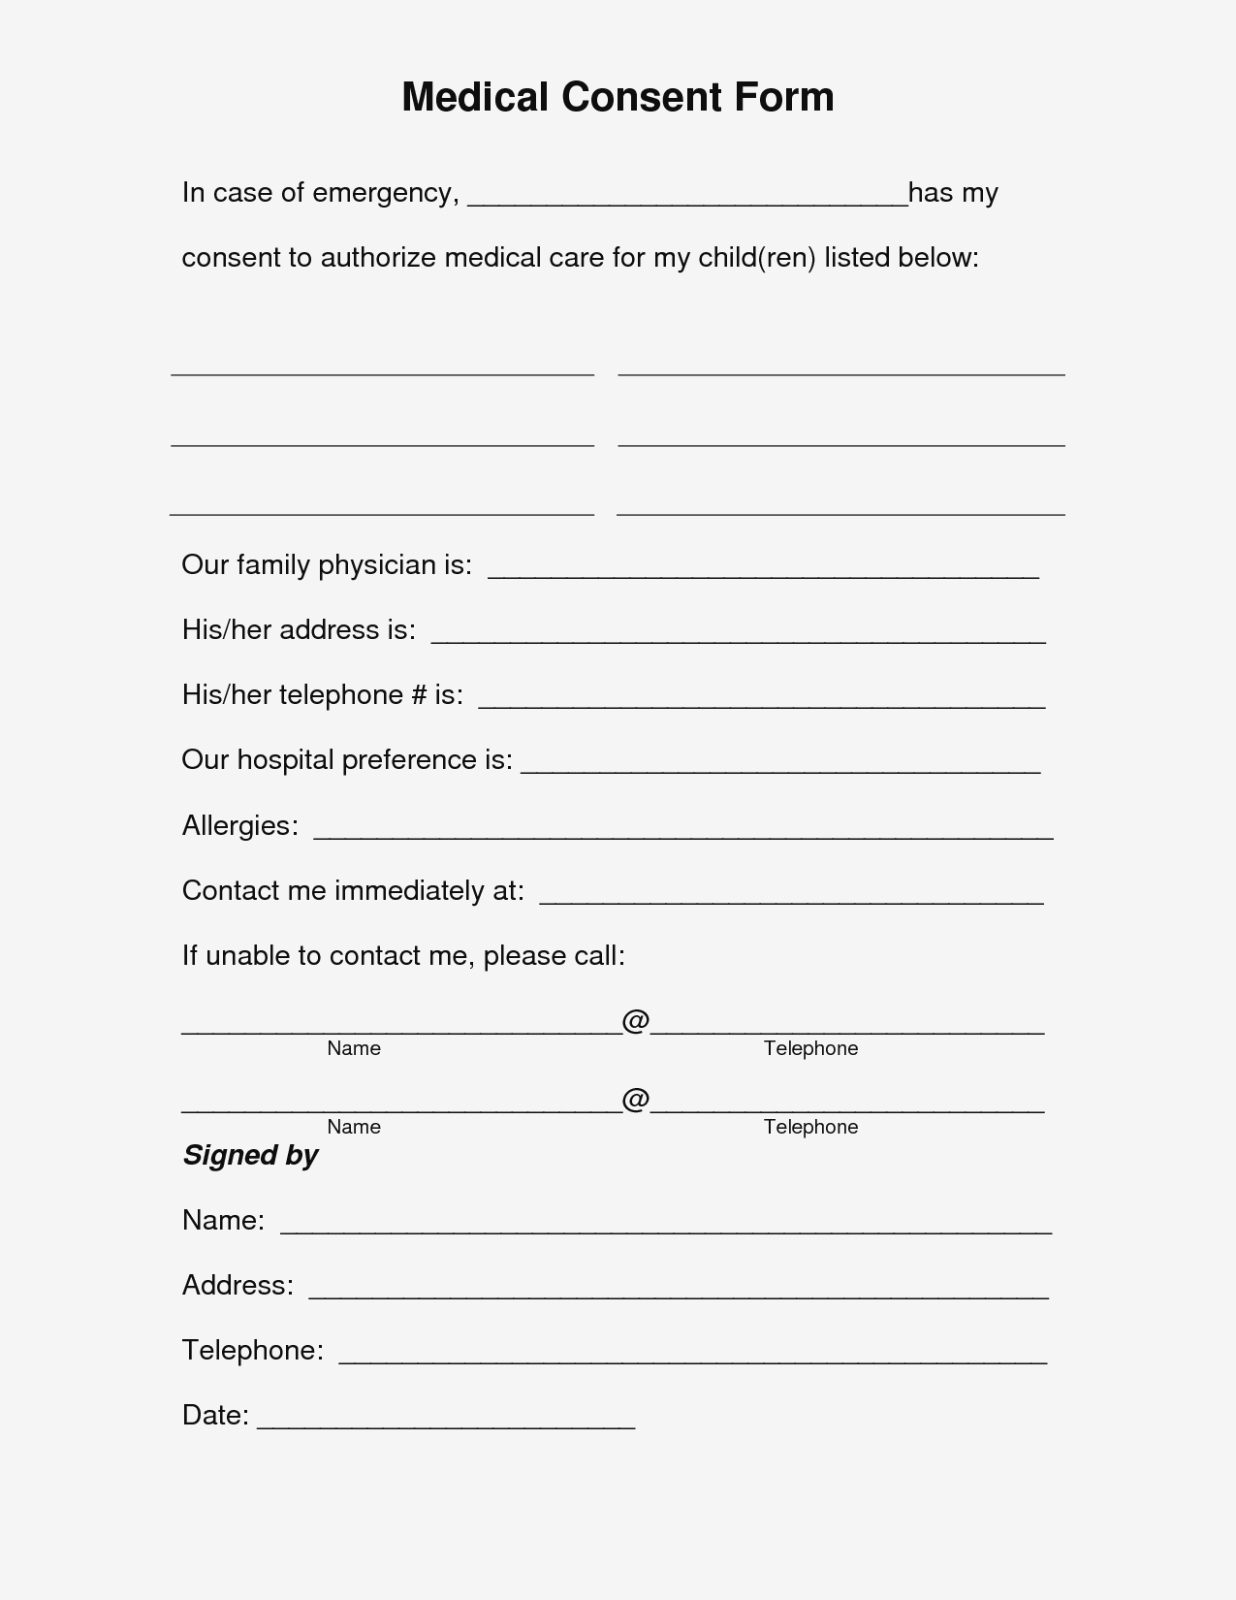 Free Printable Medical Consent Form   Free Medical Consent Form - Free Printable Caregiver Forms